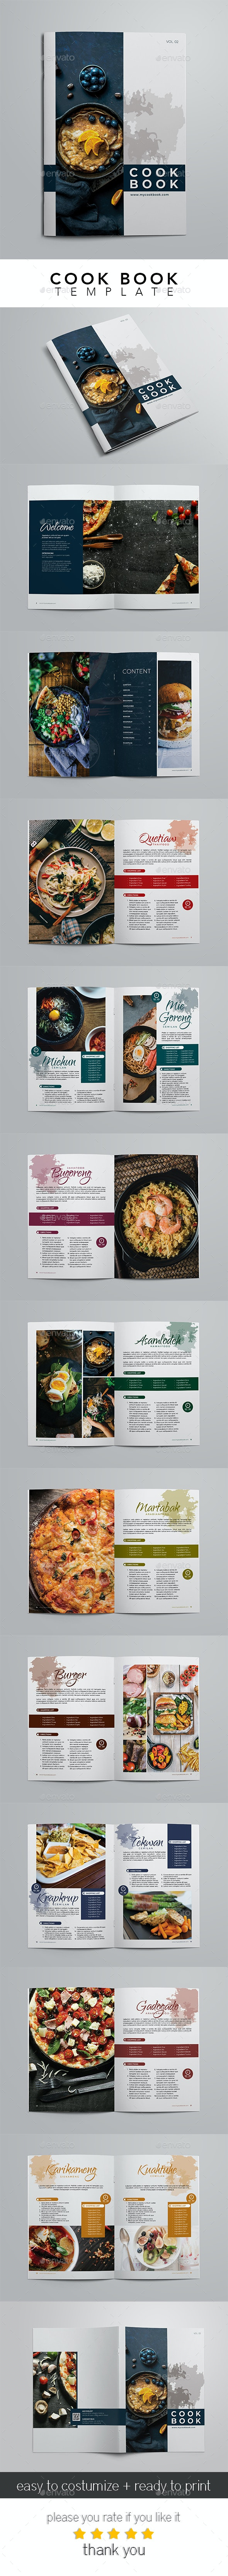 Cook Book and Recipes - Brochures Print Templates